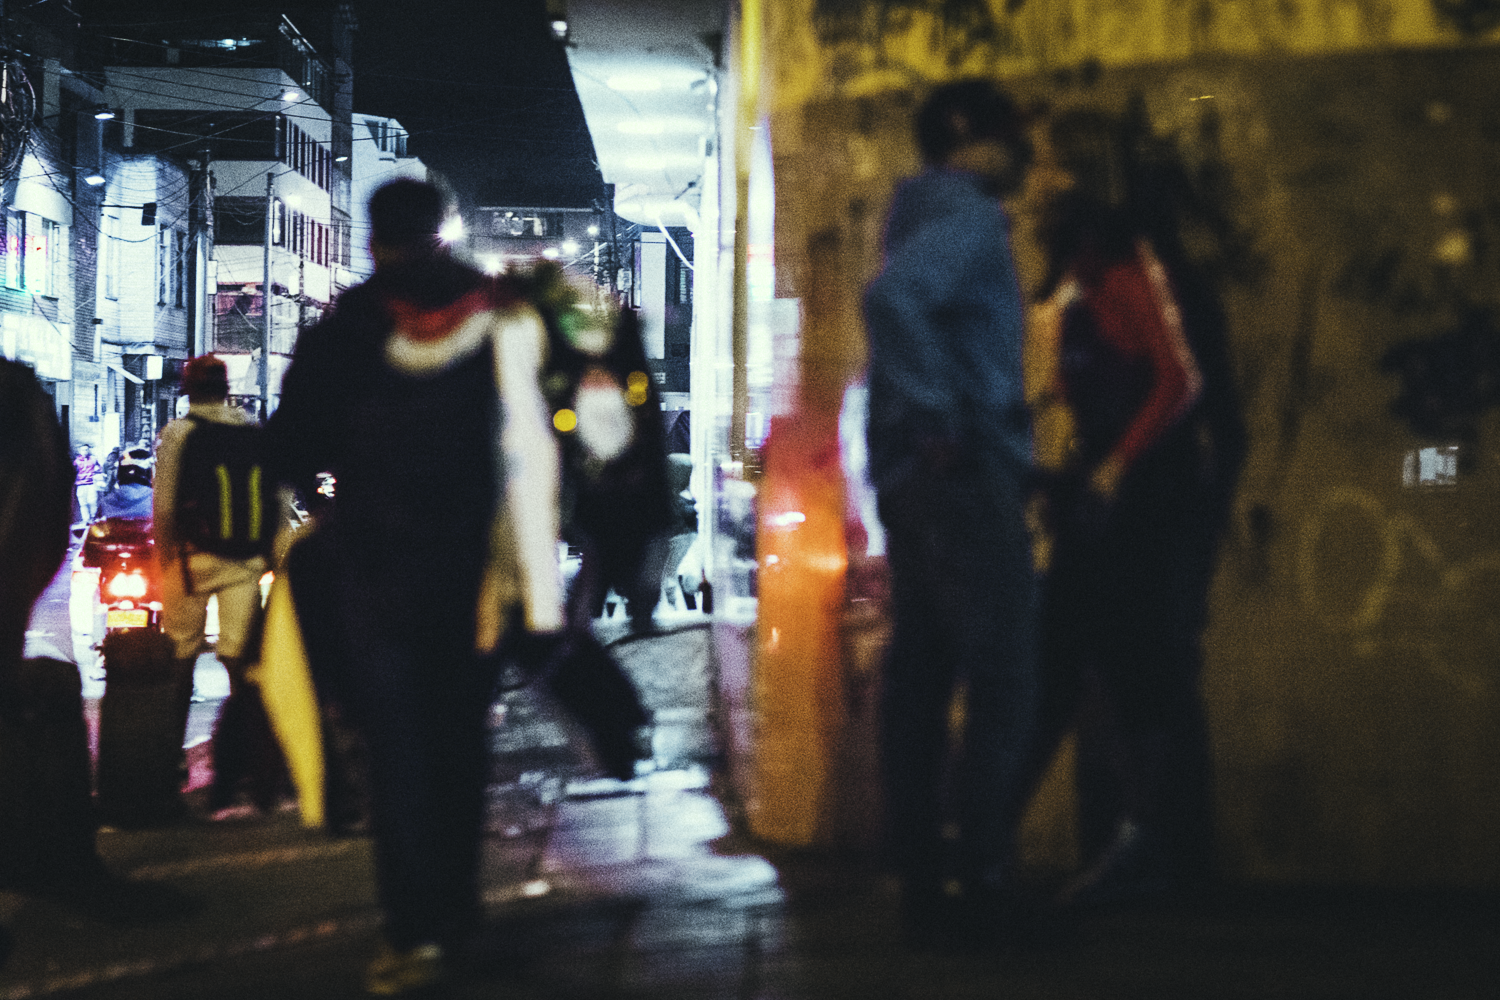 Man and woman approach each other in a dark corner of a Latin American street.